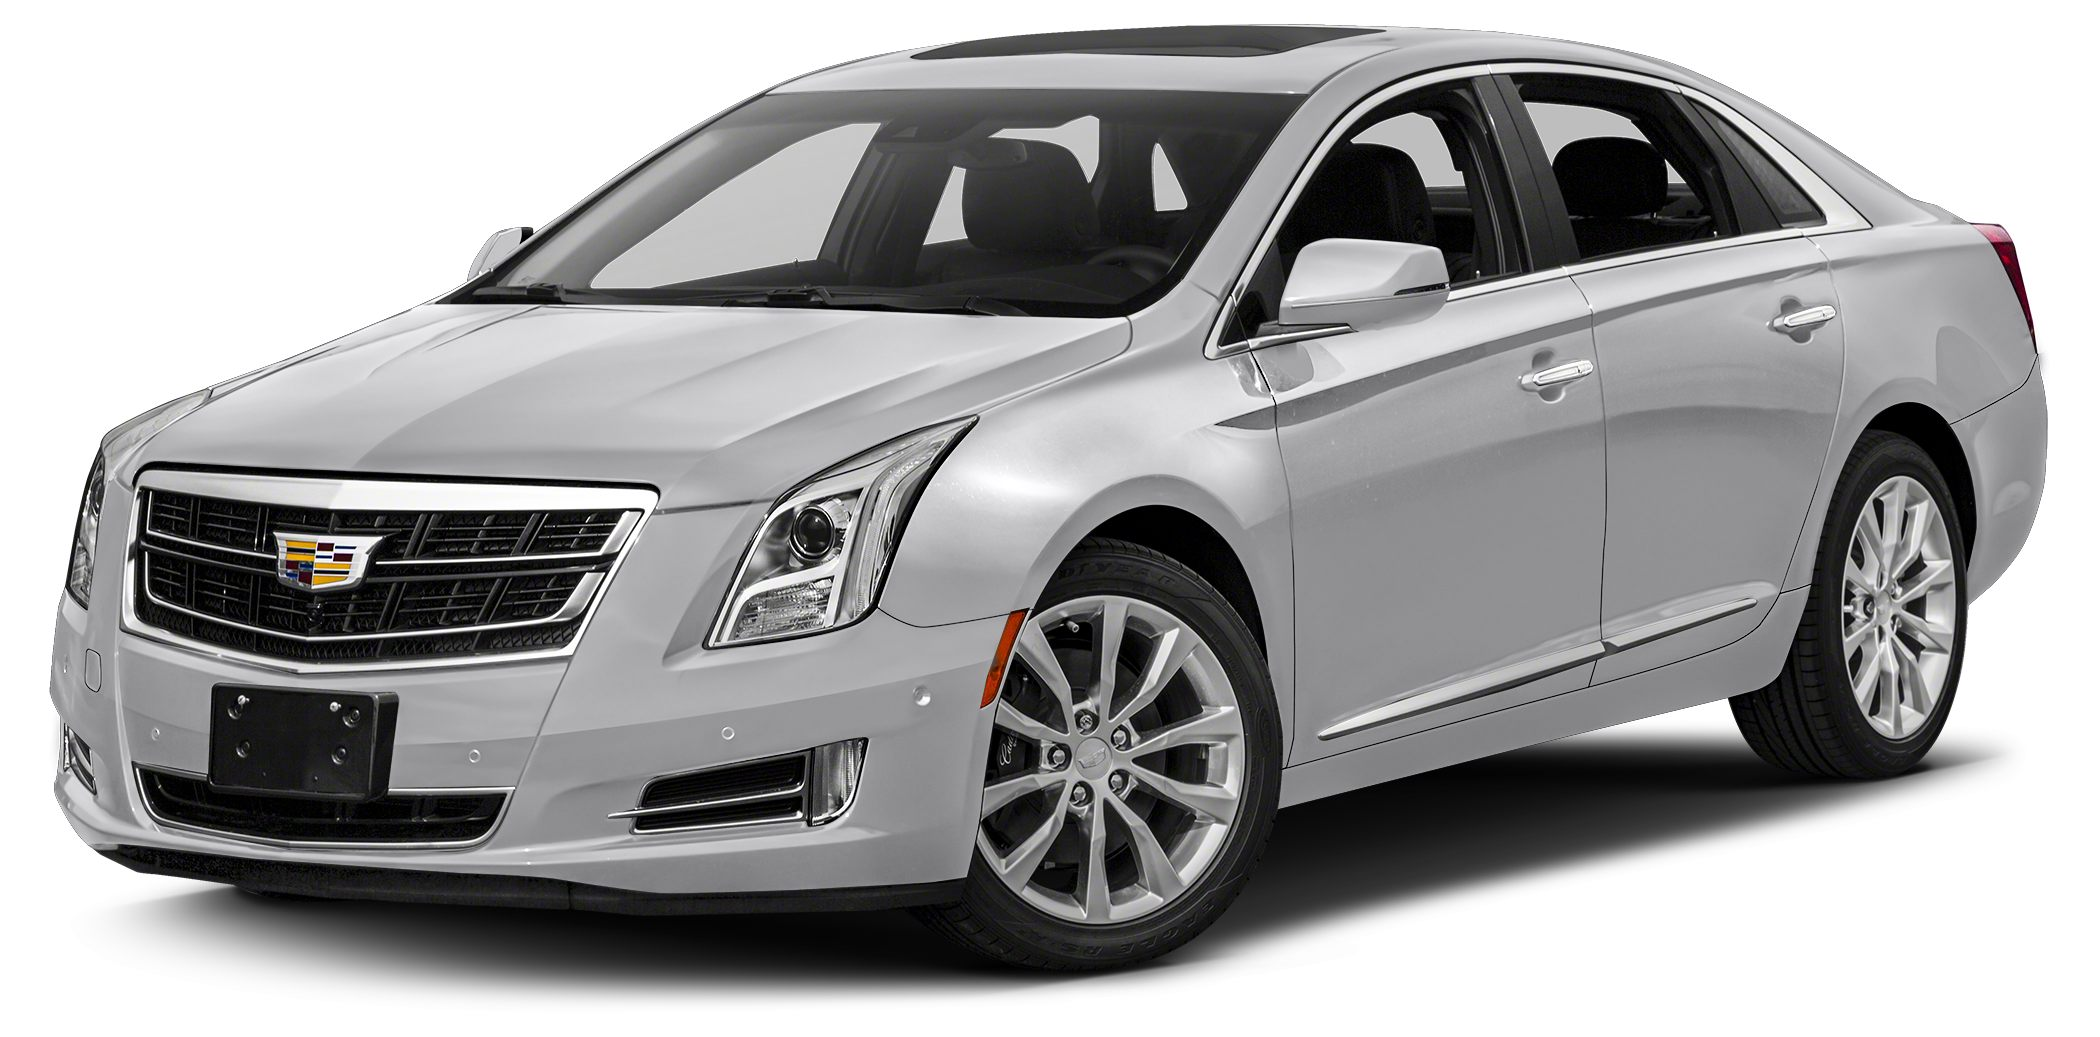 2016 Cadillac XTS Luxury Collection This 2016 Cadillac XTS 4dr Sdn Luxury Collection FWD is offere